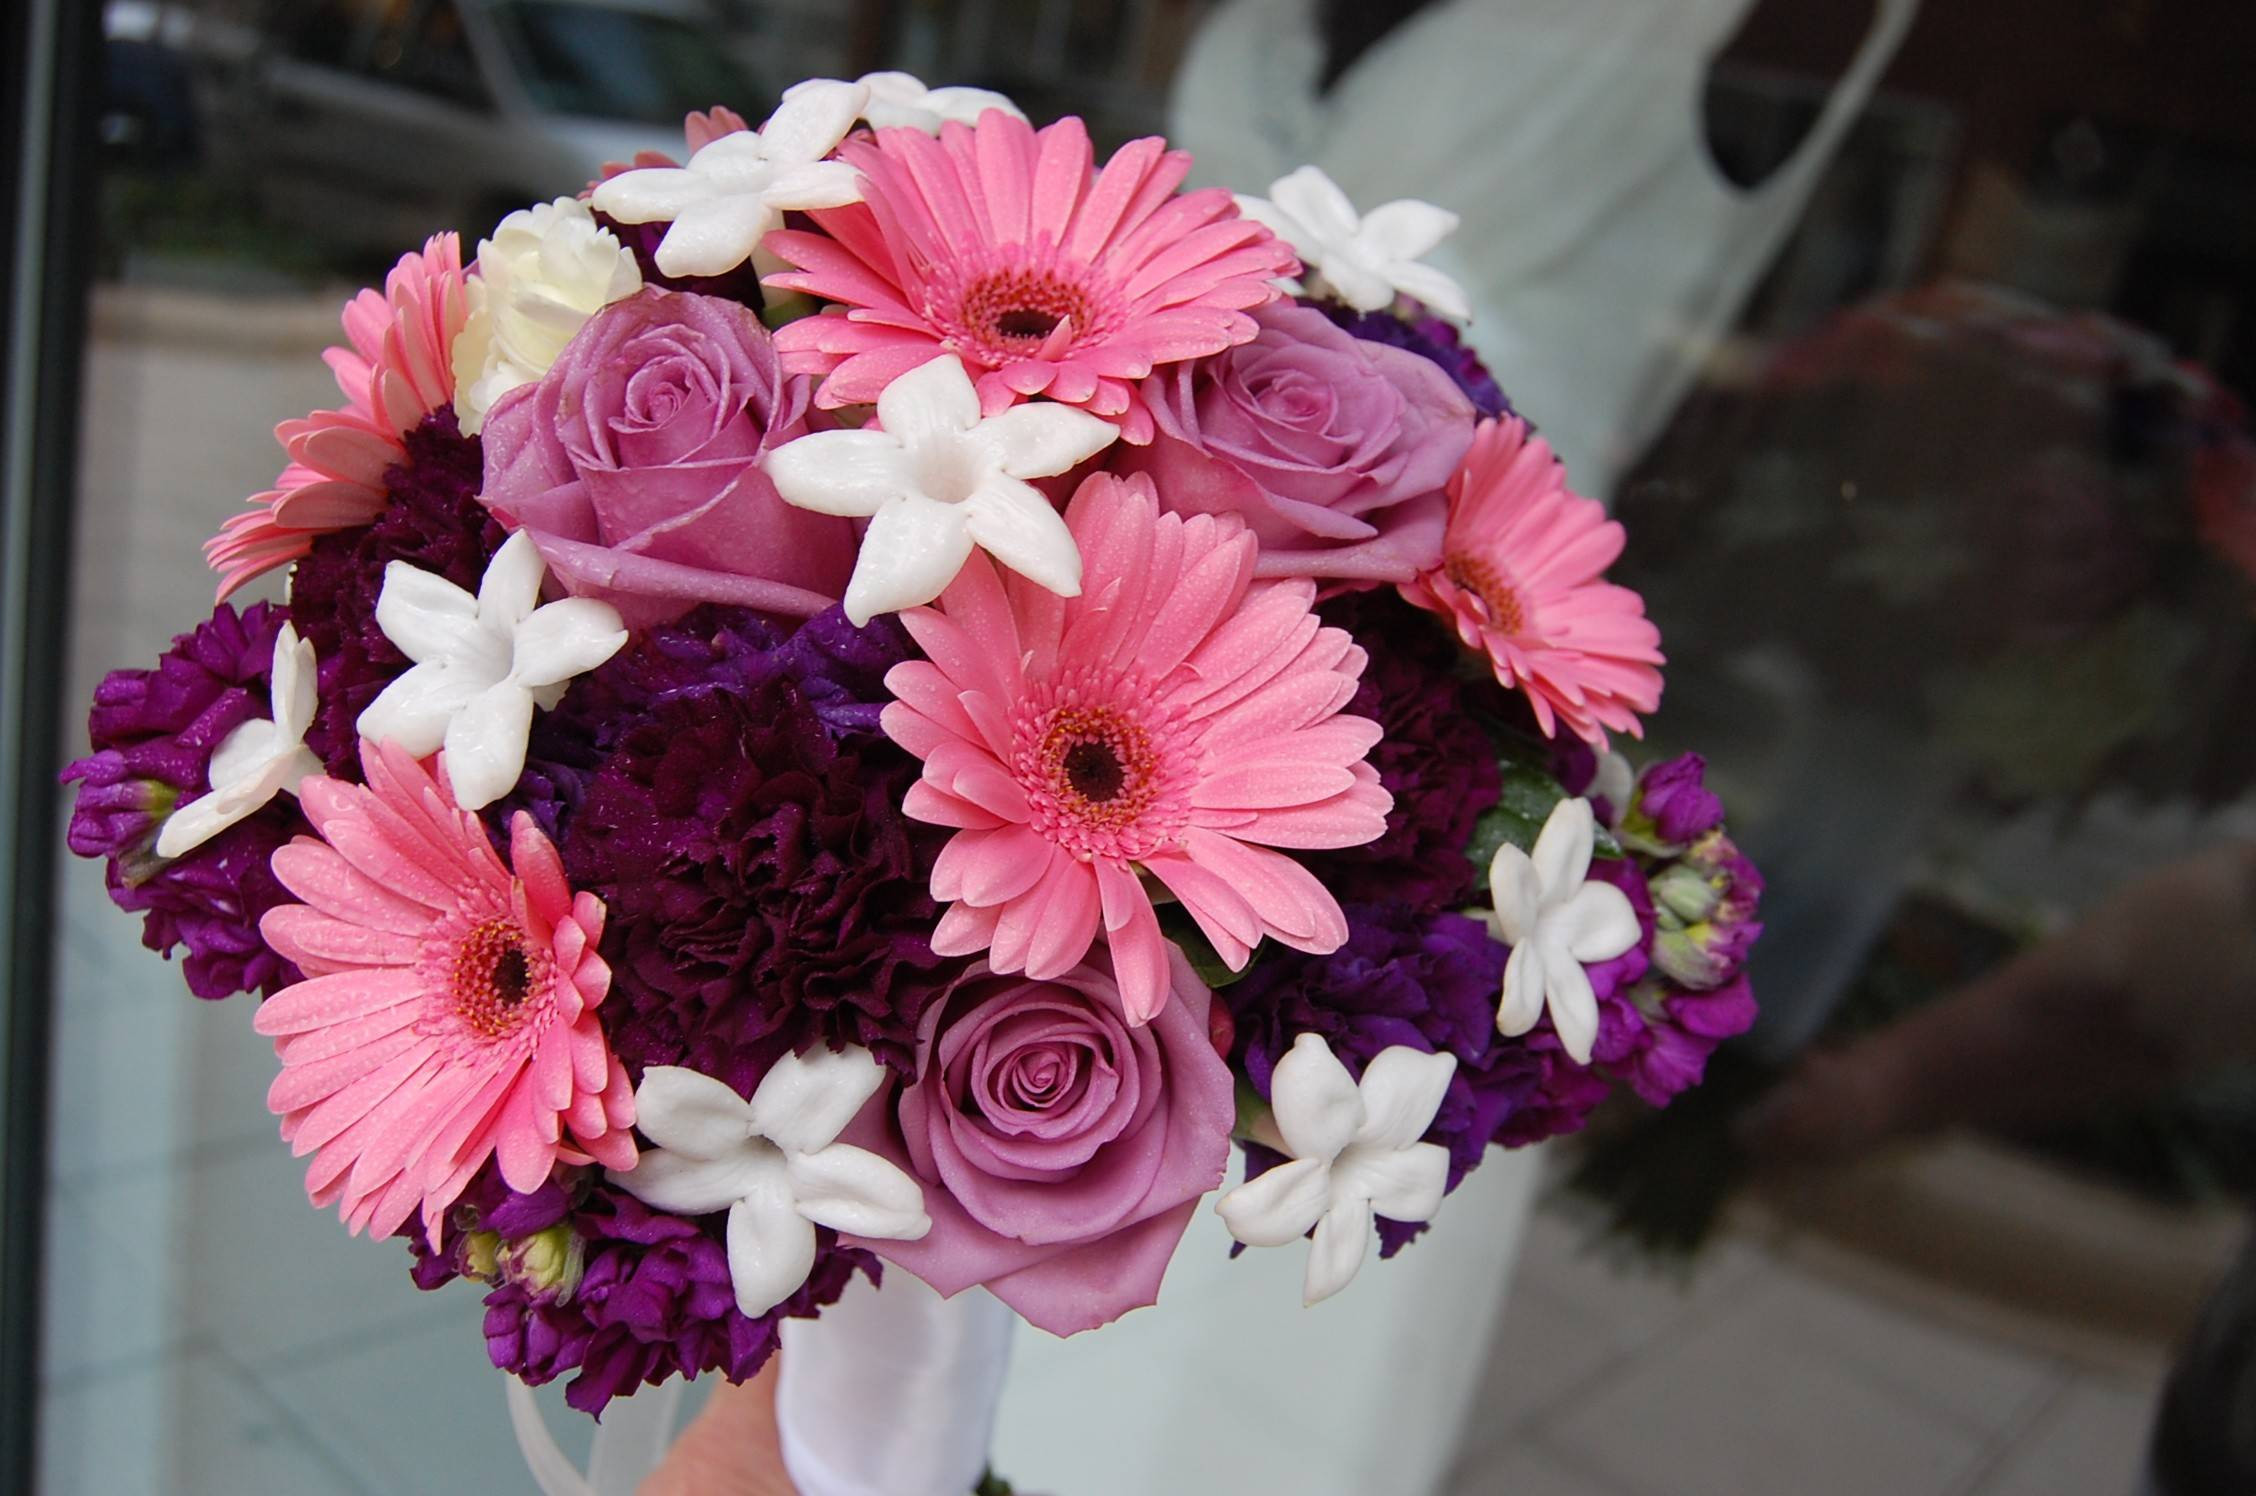 gerbera daisy arrangements vases of fresh flowers bouquets weddings auroravine com inside fresh flowers bouquets weddings